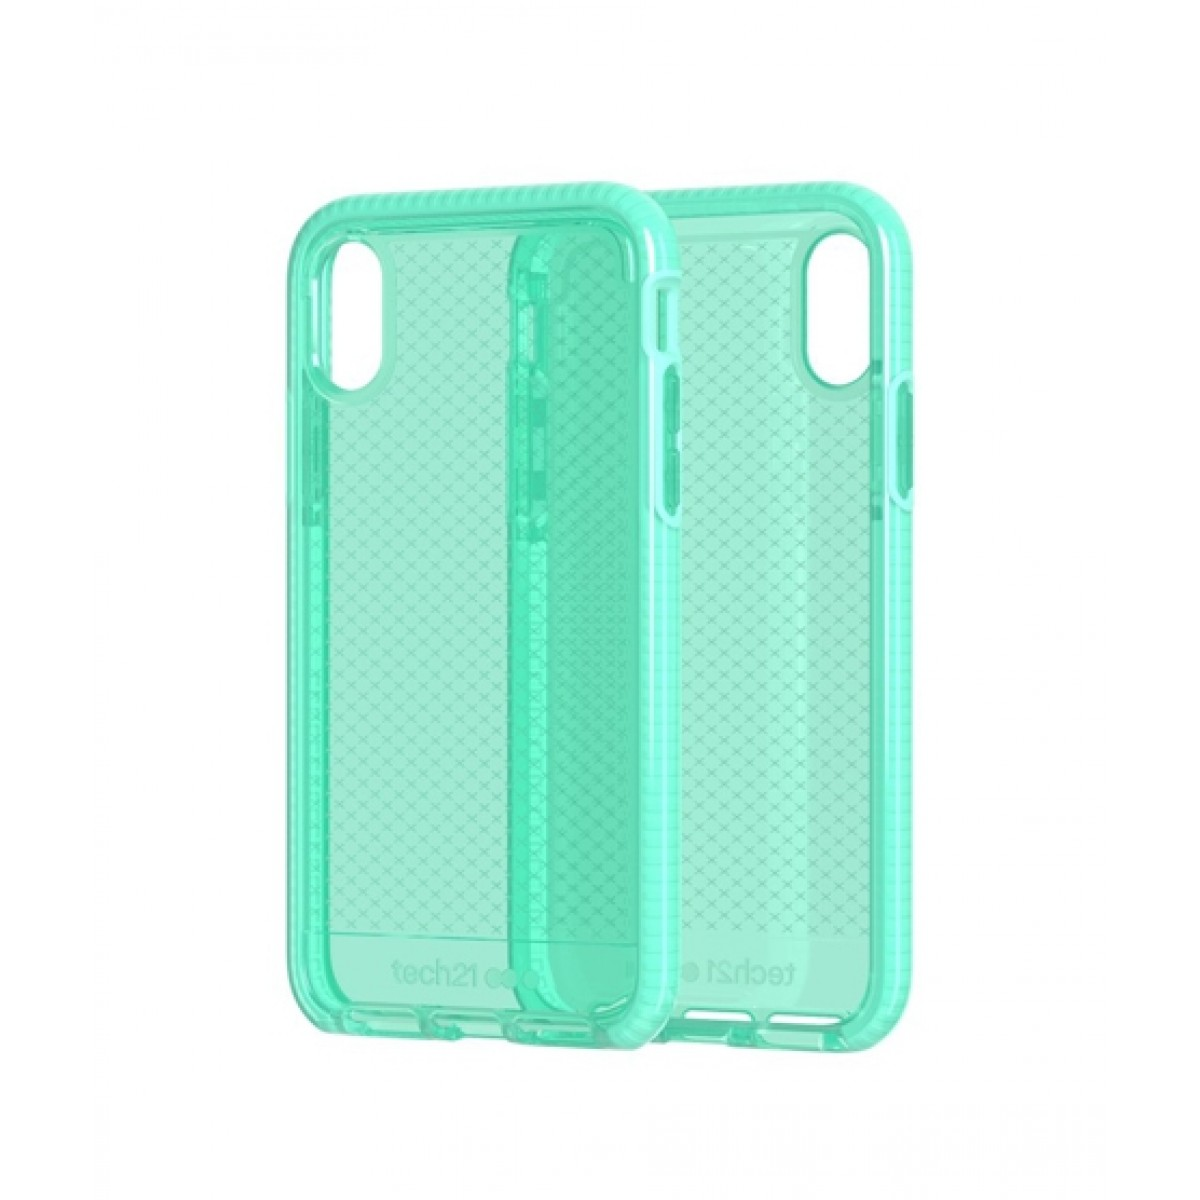 new products 7d97a 37f35 Tech21 Evo Check Neon Aqua Case For iPhone XR